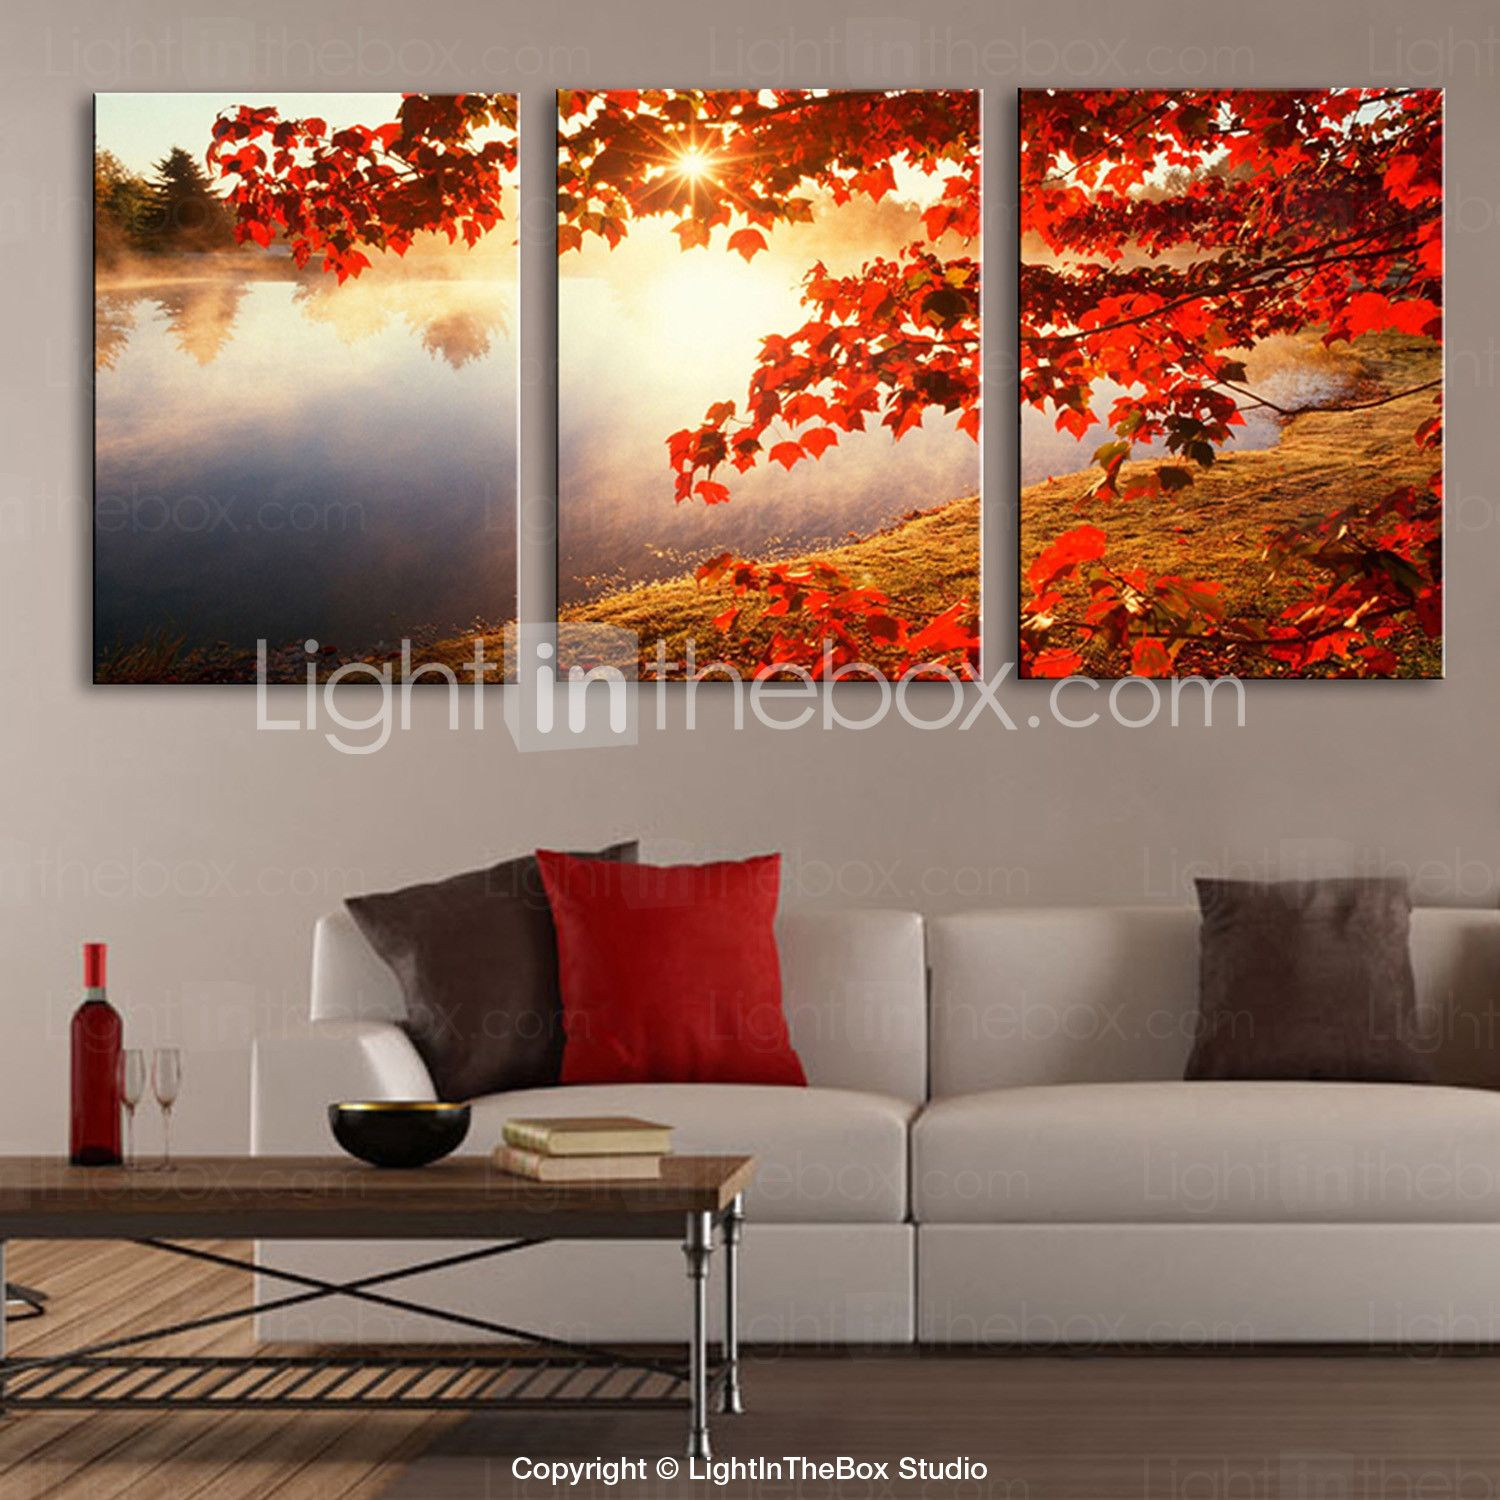 Large Canvas Prints For Living Room Classic Realism Three Panels Horizontal Print Wall Decor